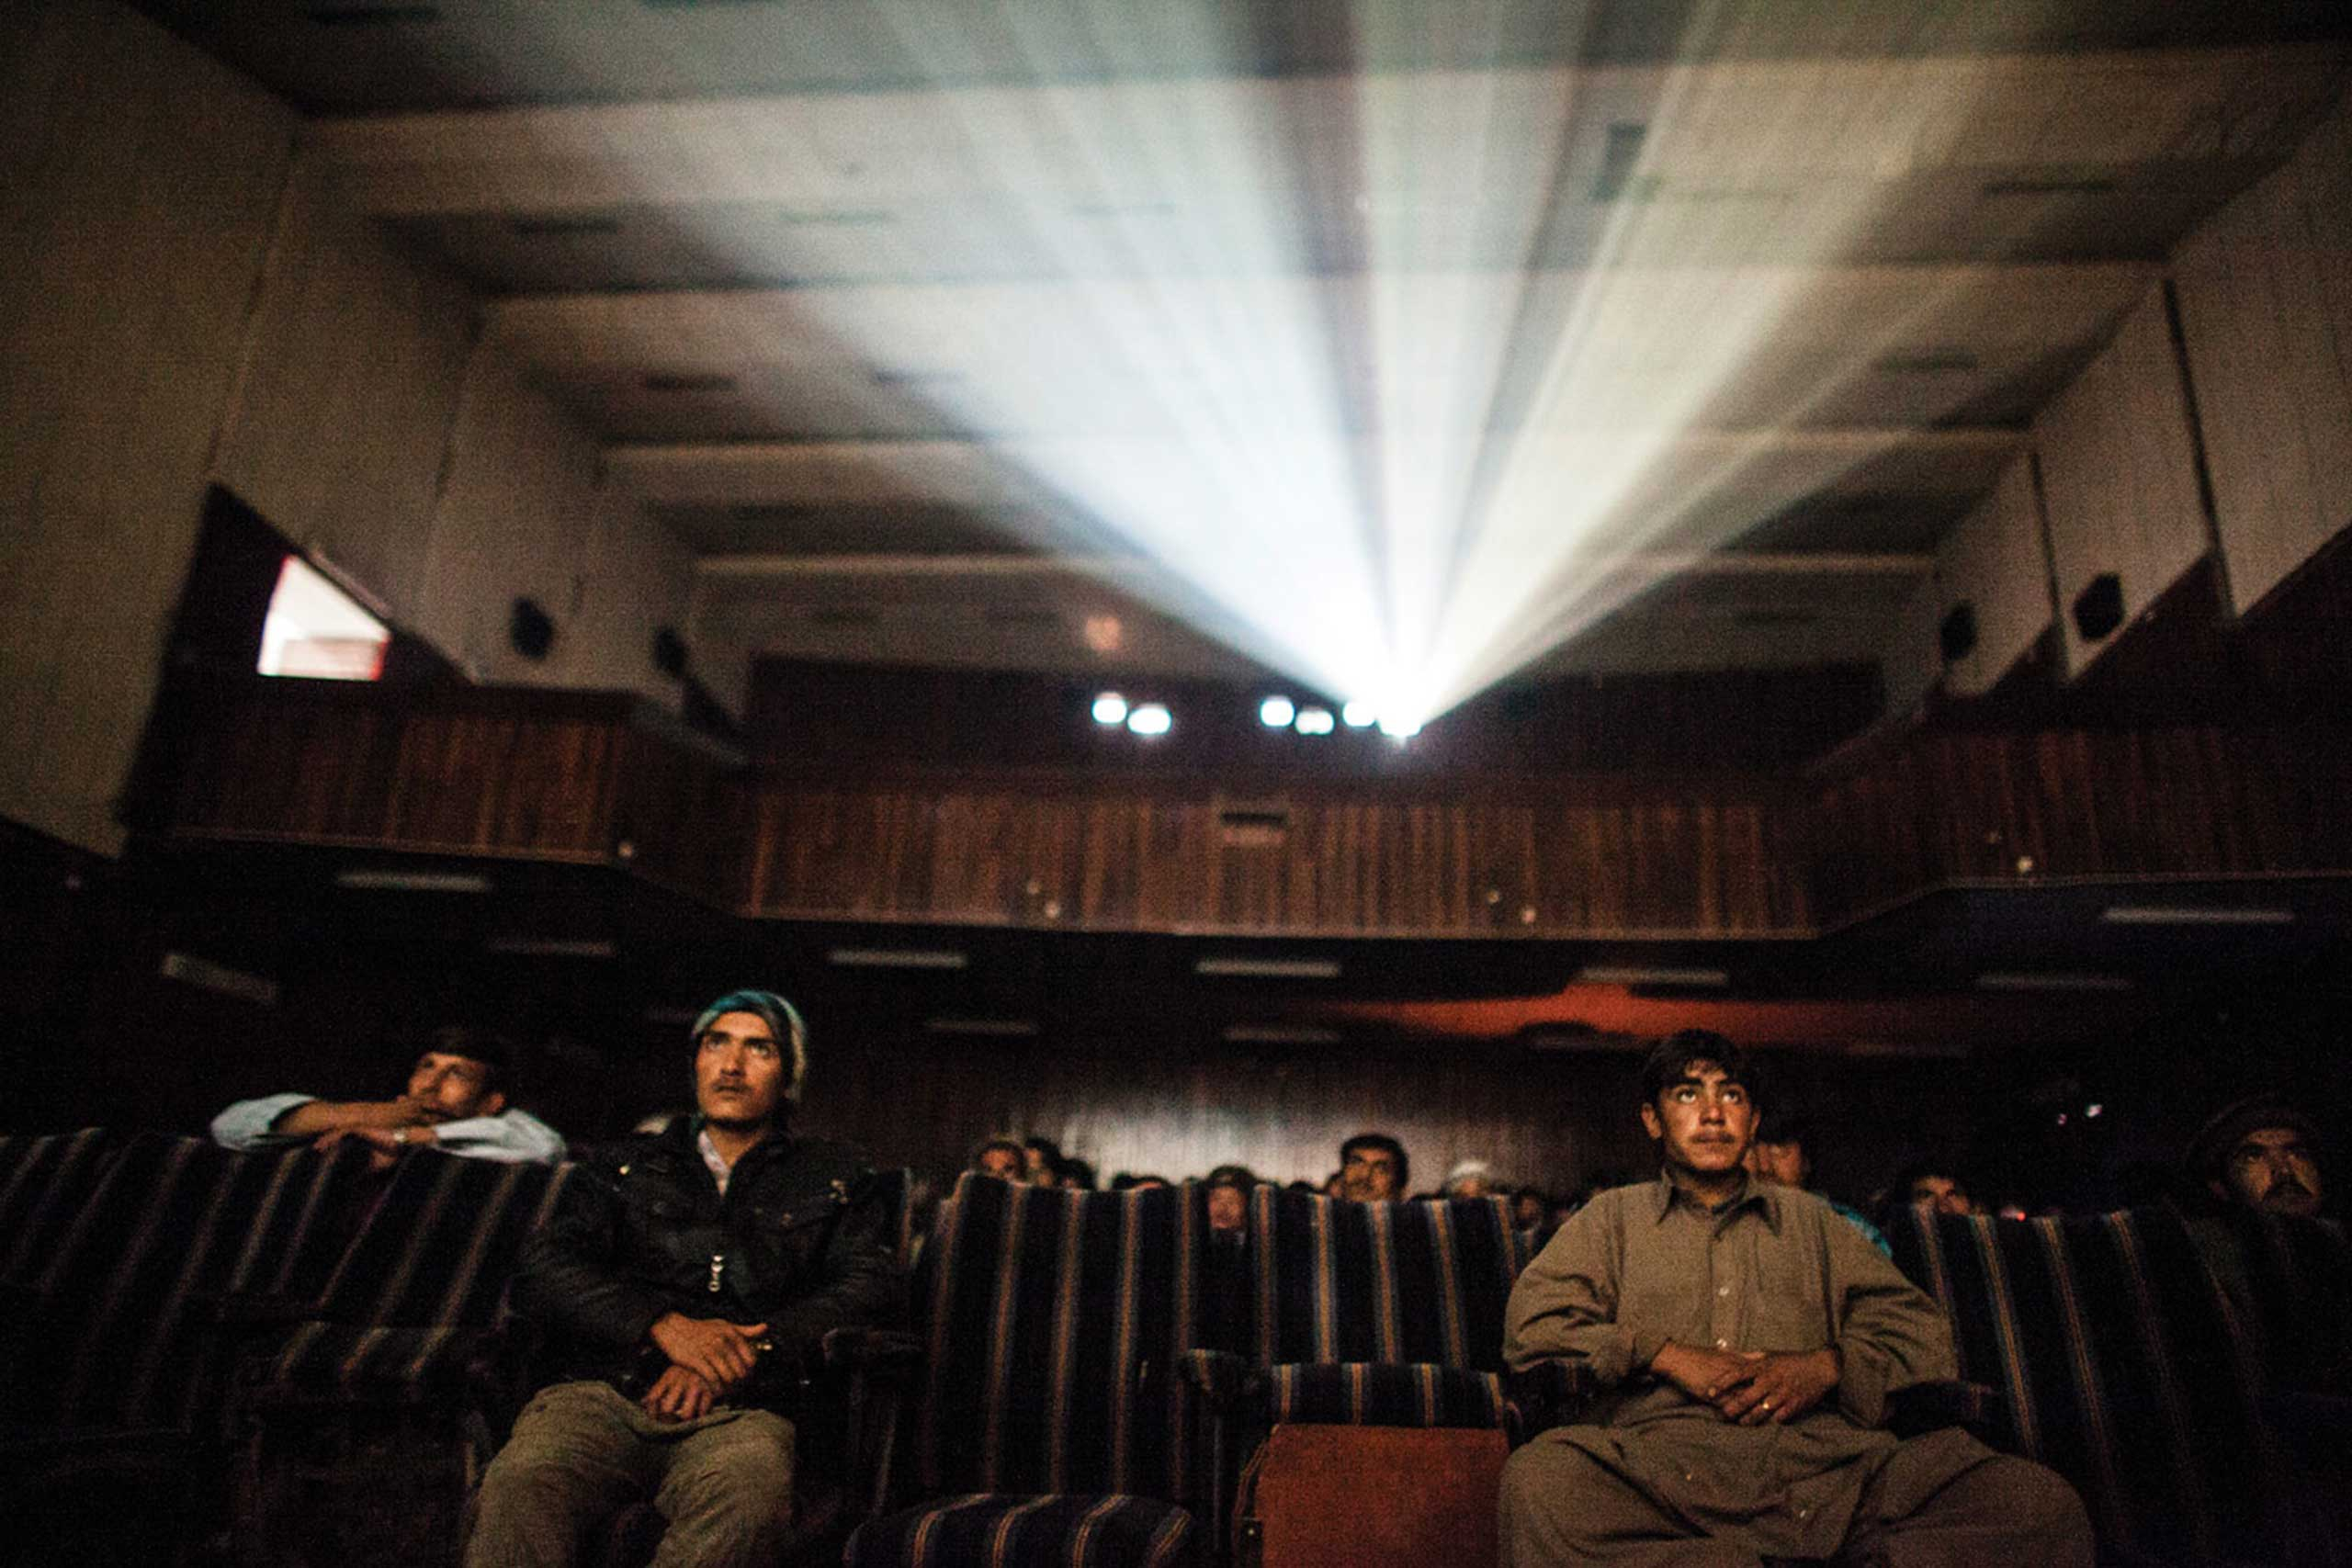 Jonathan Saruk's The Forbidden Reel shows a delicate sliver of life in a country that is notorious for war images. The book is intimate. It allures you into a private place that is usually shrouded in darkness. Saruk's passion for the project is evident in the work. He documents the theaters of Kabul, the projectionists, the screens, and the film itself. But most importantly, Saruk documents the moviegoers. This work provides very important insight into the life of young people in Kabul, through a lens that doesn't involve war or poverty.                                                              It's an escape from reality for the reader and for the subjects of the pictures - as movies were intended to be.                                                                -Marisa Schwartz, Associate Photo Editor, TIME.com.